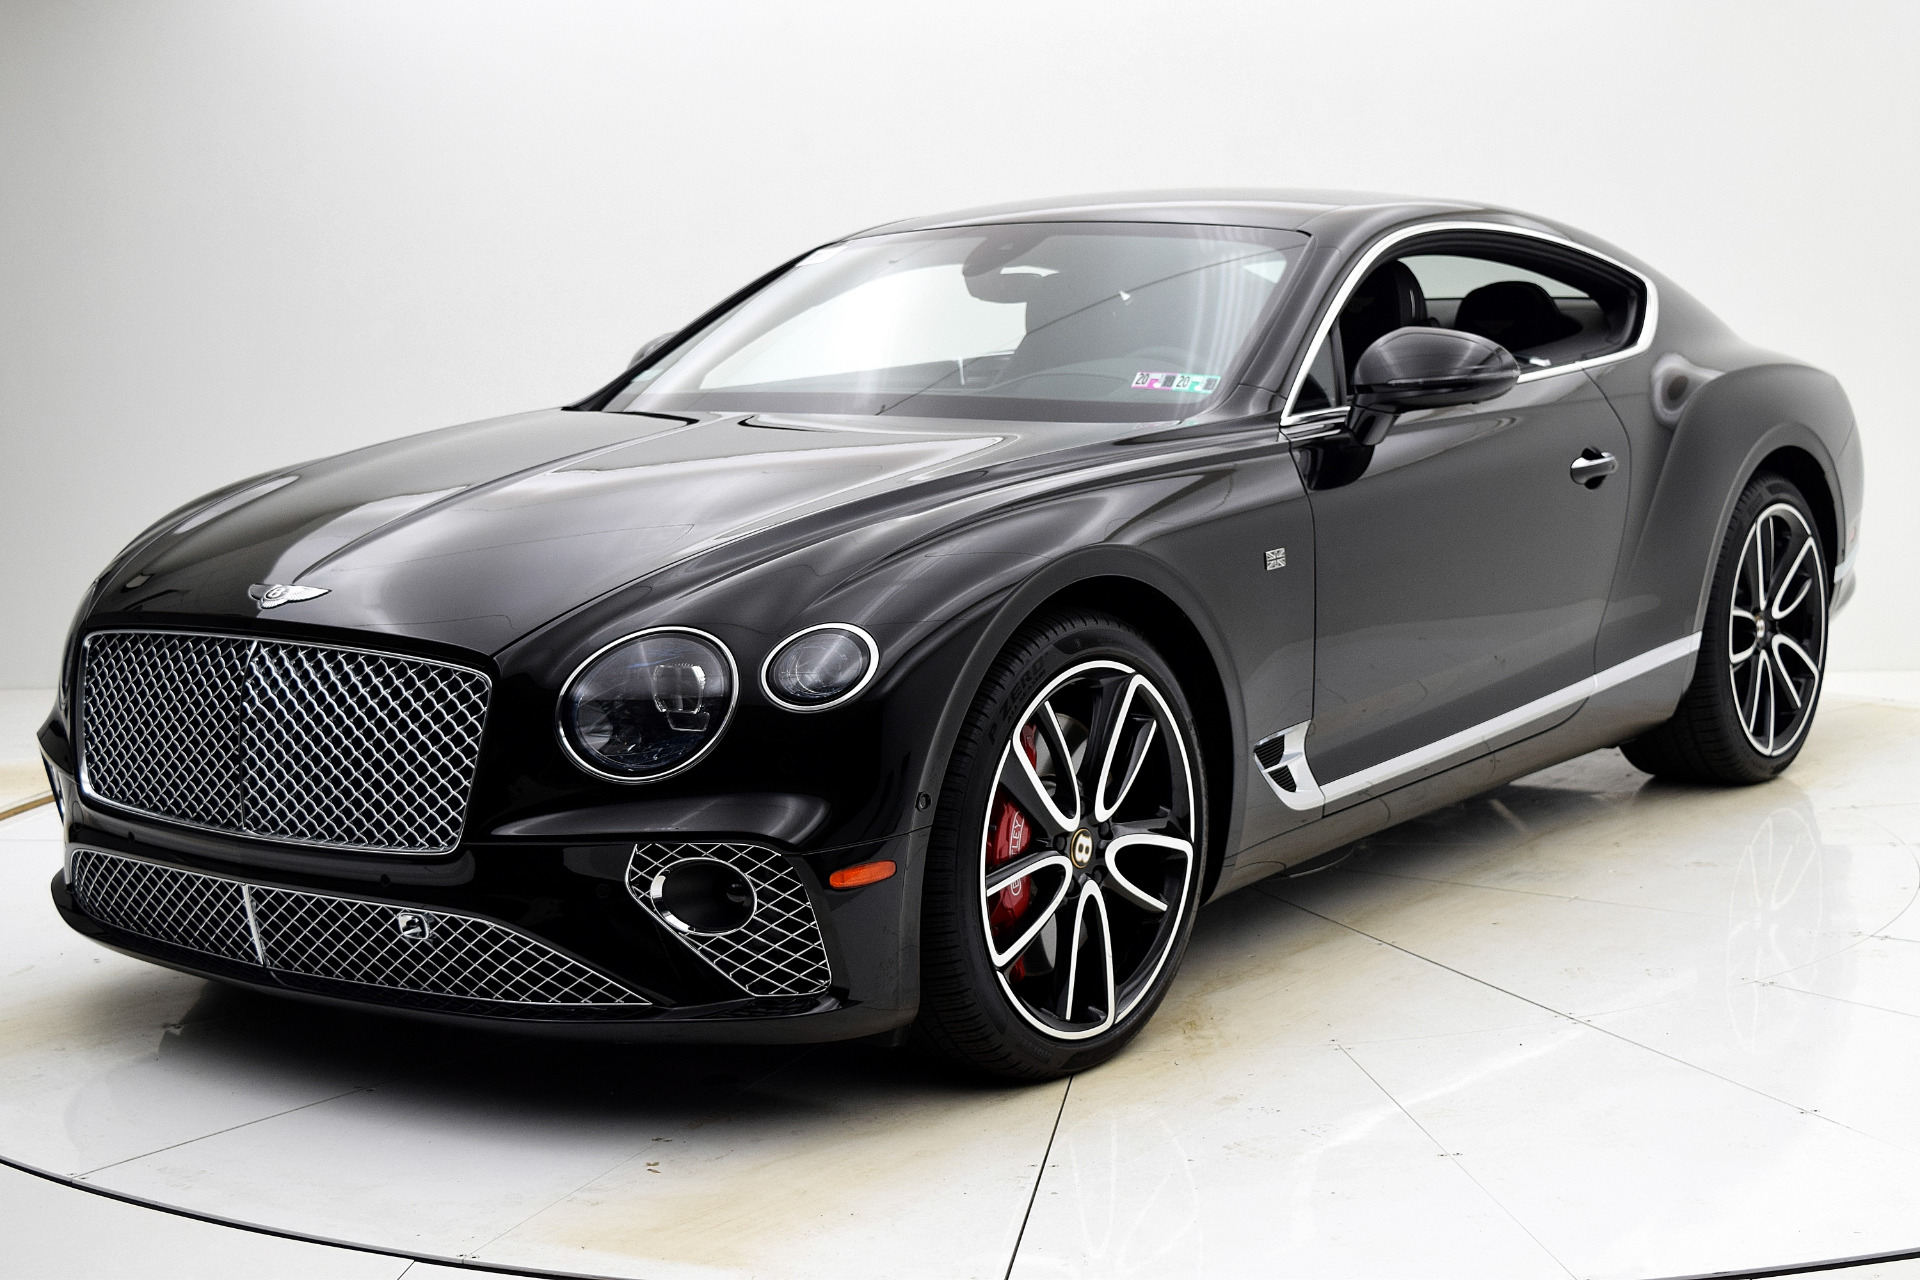 Used 2020 Bentley Continental Gt First Edition For Sale 229 880 Bentley Palmyra N J Stock 20be124aji